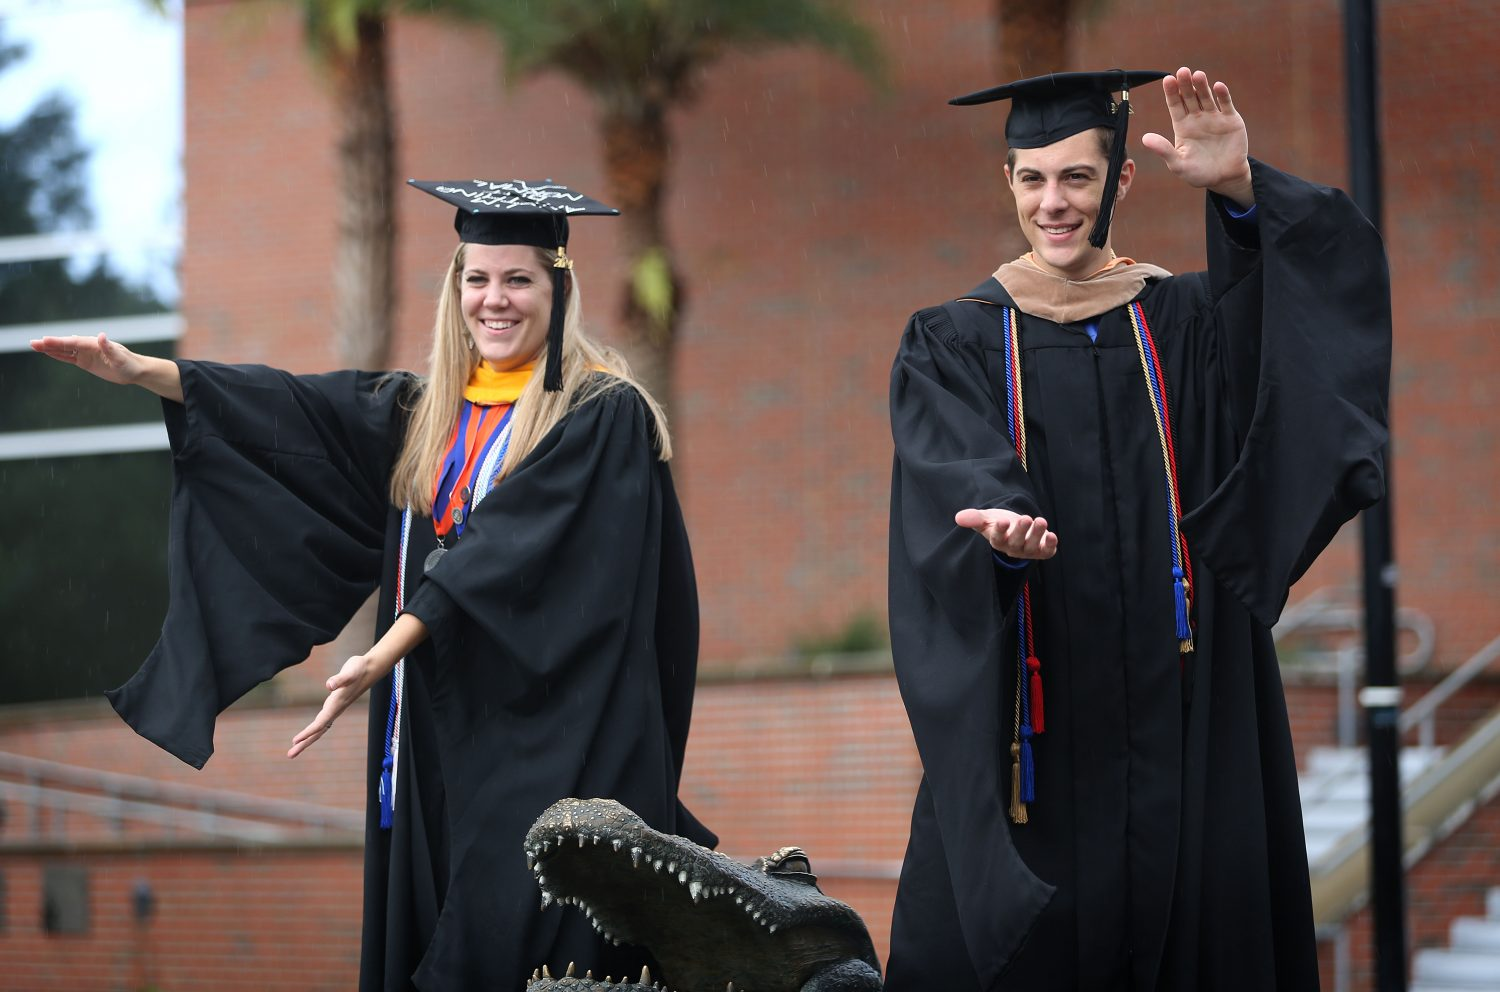 Kirsten Soucek, 22, and her twin brother Alex Soucek, 22, pose for a photo during their graduation shoot at Ben Hill Griffin Stadium at the University of Florida on Thursday, May 1, 2014, in Gainesville, Fla. Kirsten will graduate with a masters in statistics and Alex will graduate with a masters in accounting.